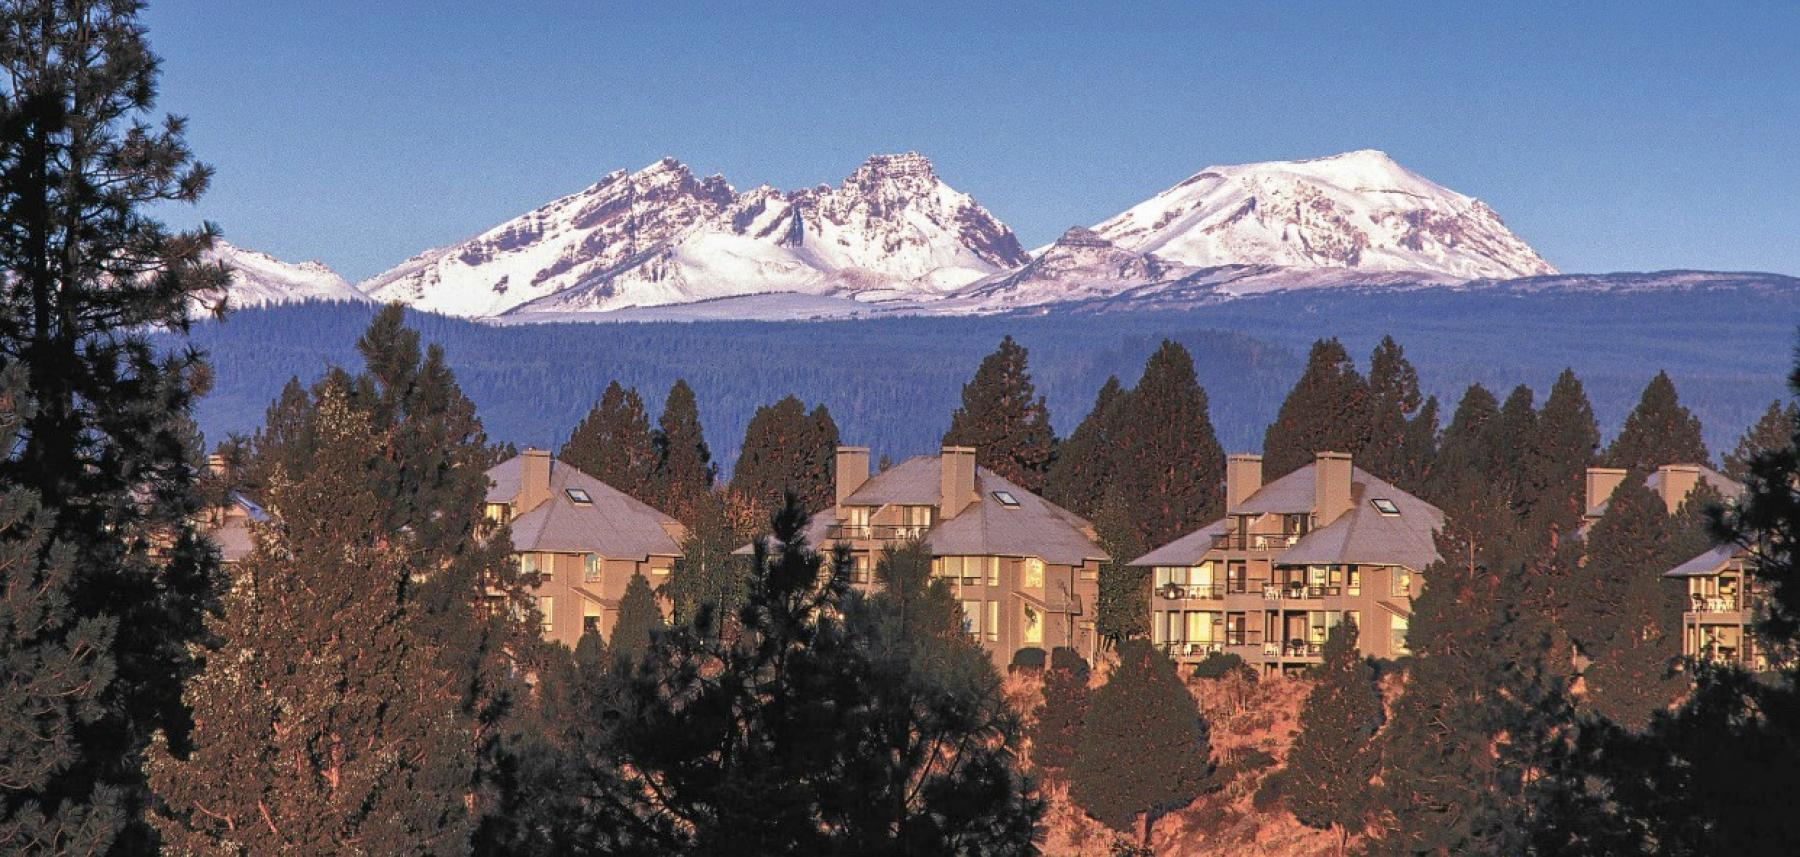 Mt Bachelor Village Condos for Sale in Bend, OR | Bend